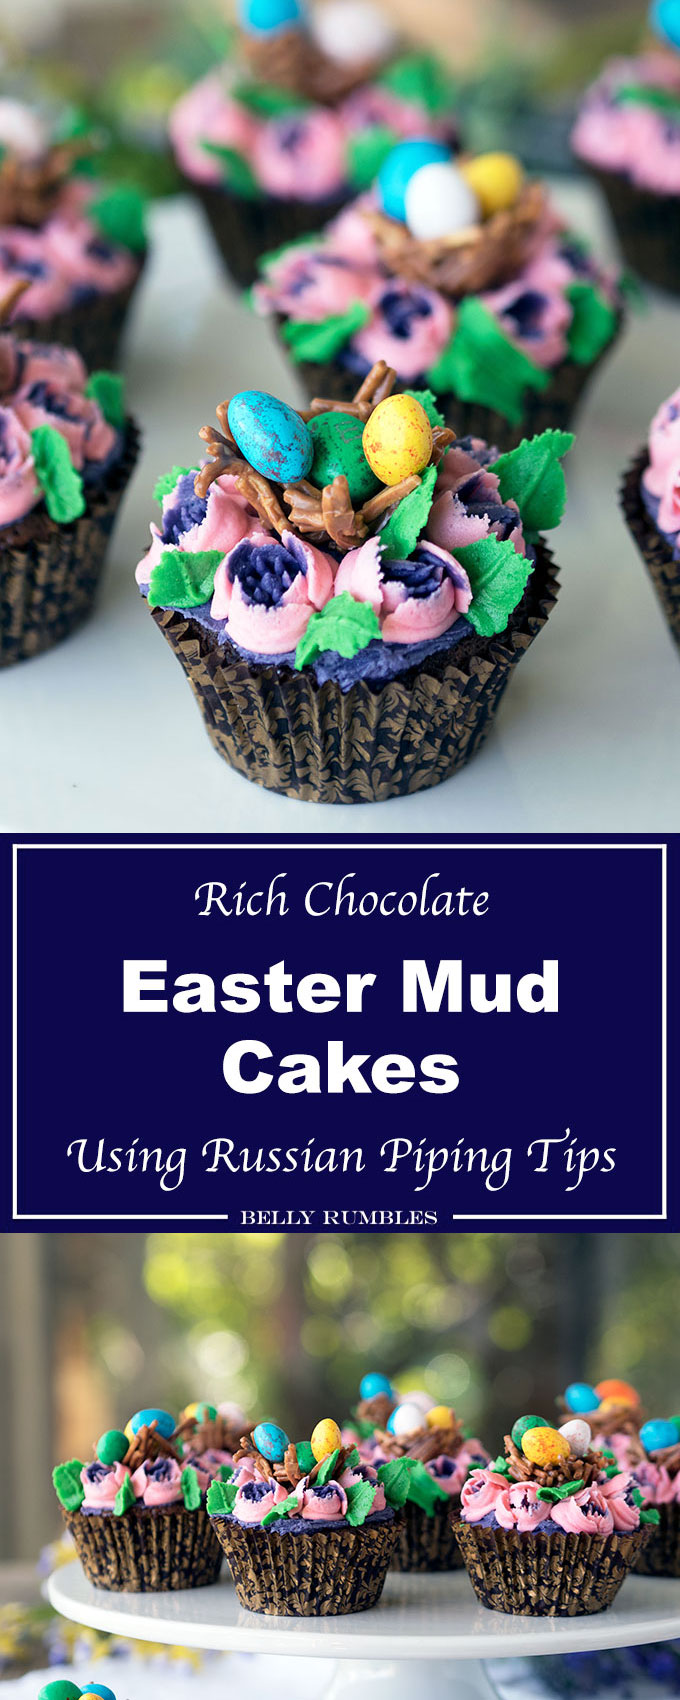 Chocolate Mud Cupcakes decorated for Easter. Pretty flowers with chocolate bird's nests filled with mini speckled eggs. Decorated using Russian piping tips.